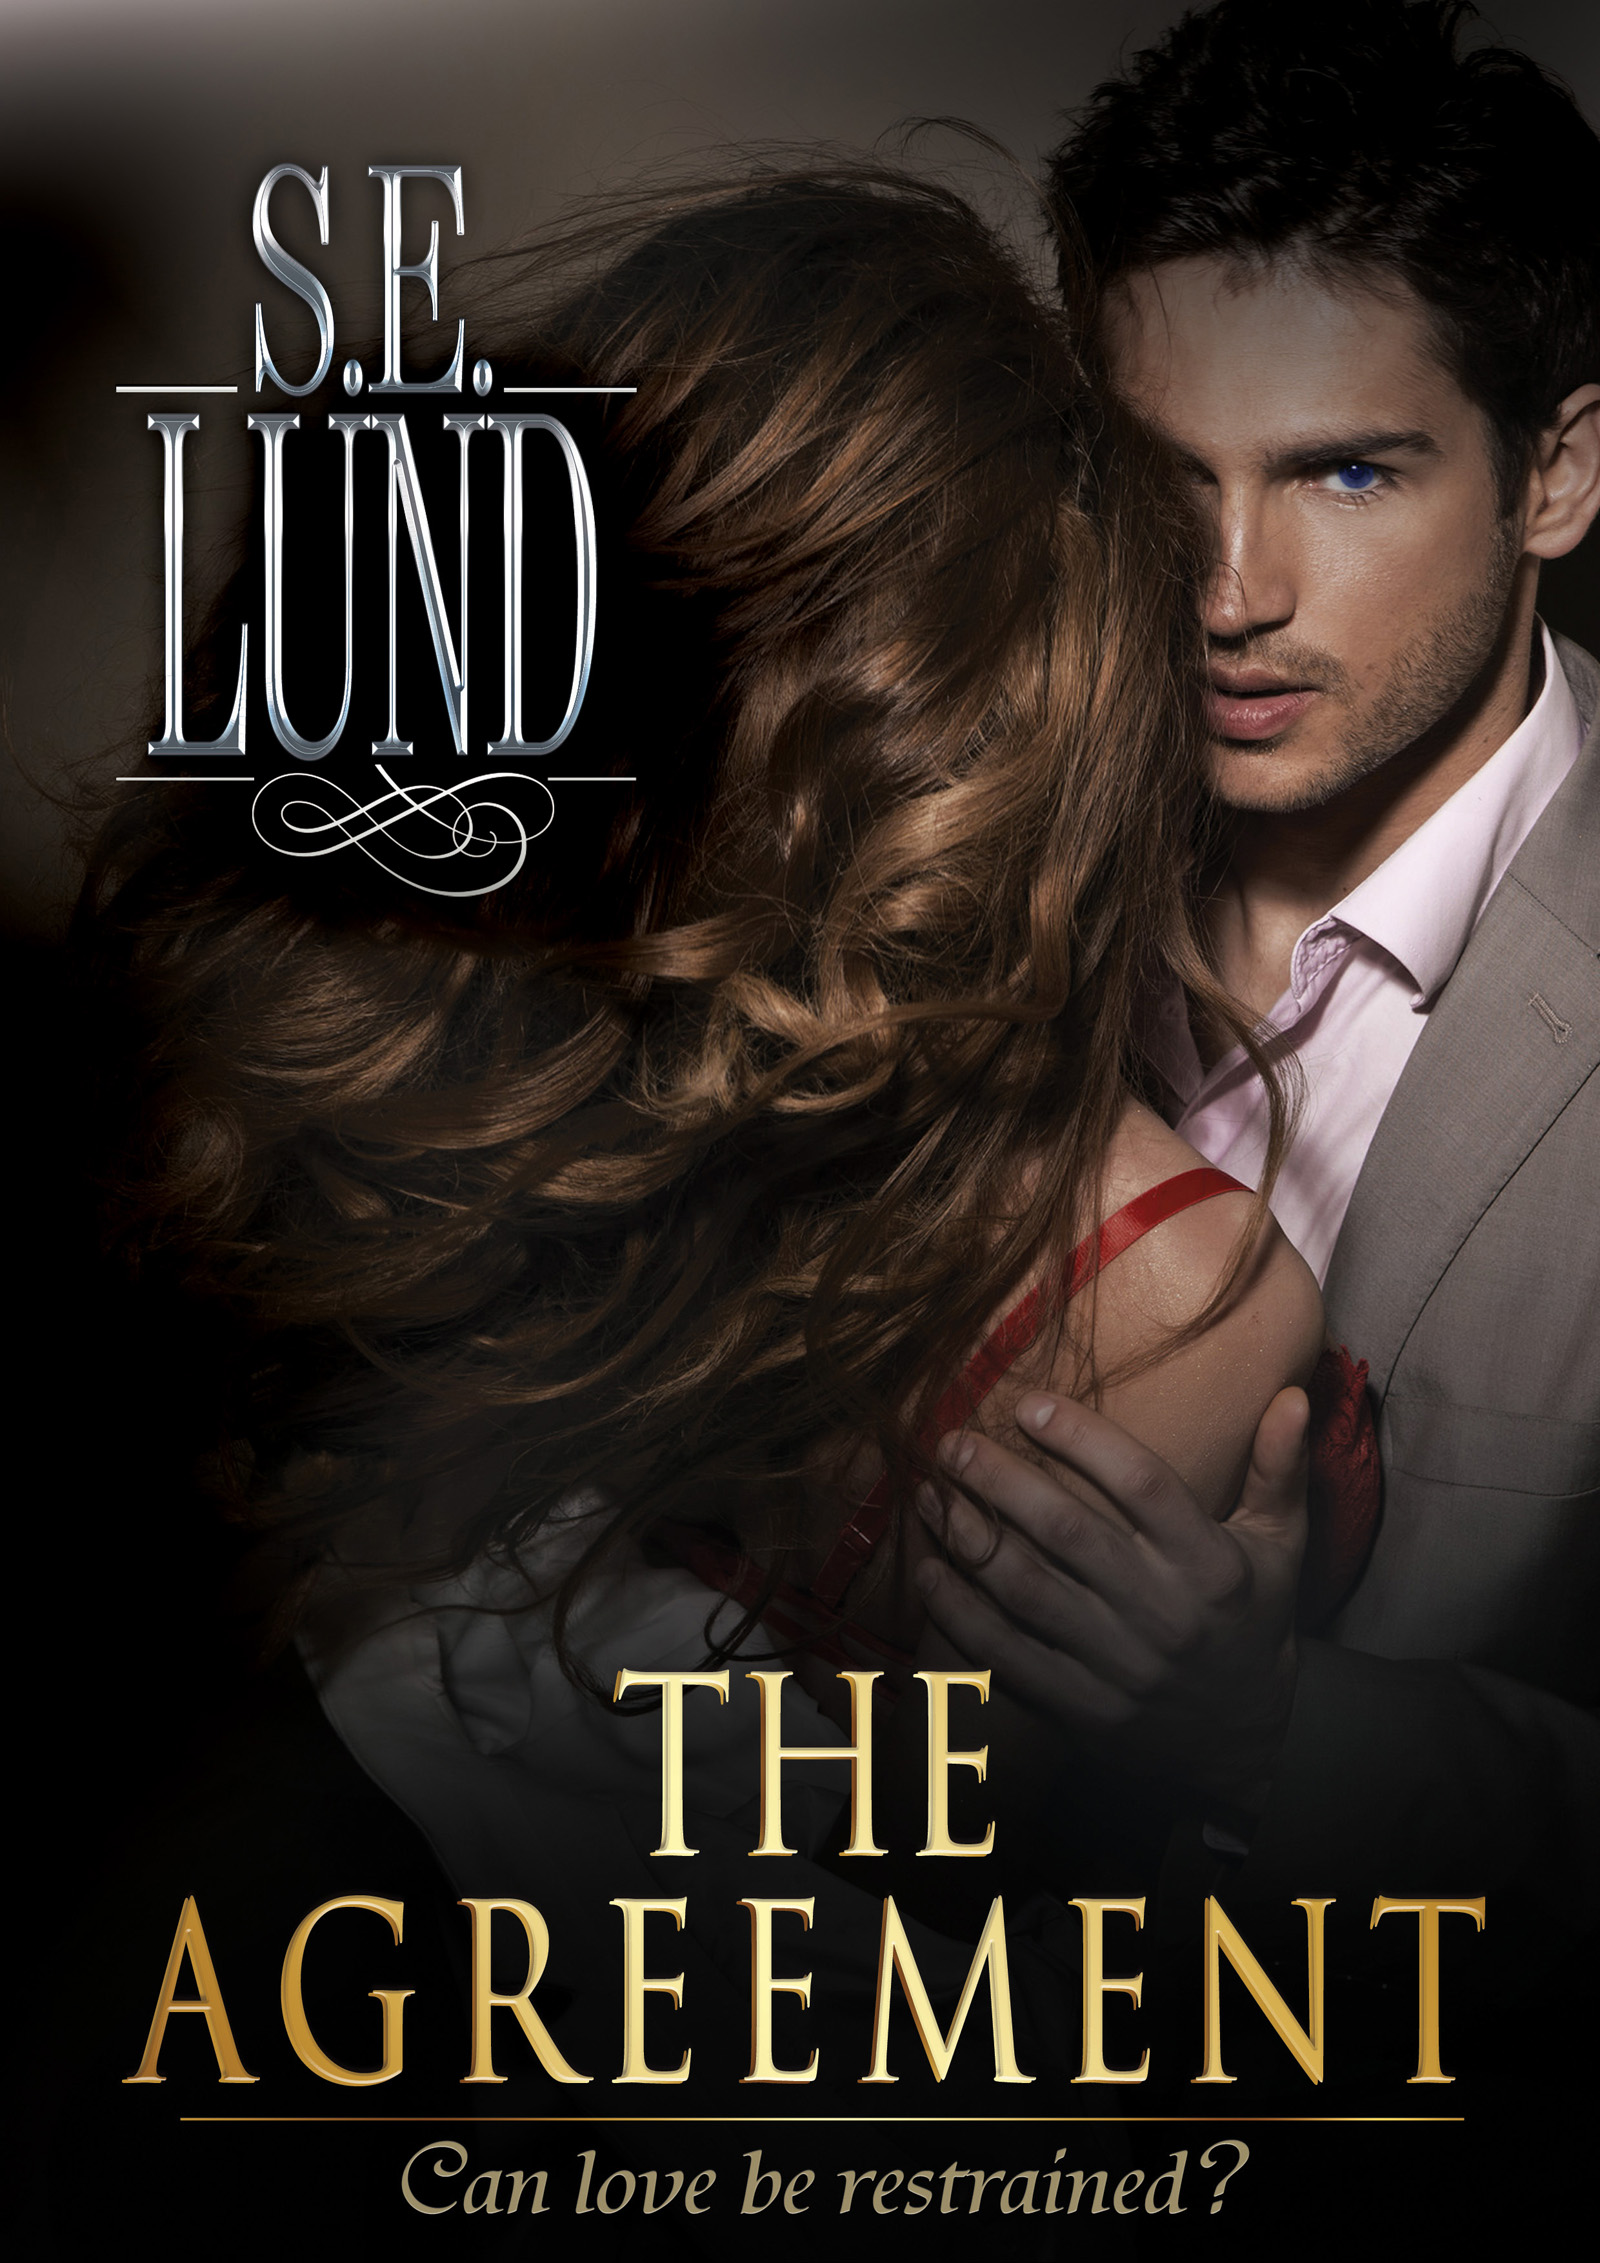 S. E. Lund - The Agreement